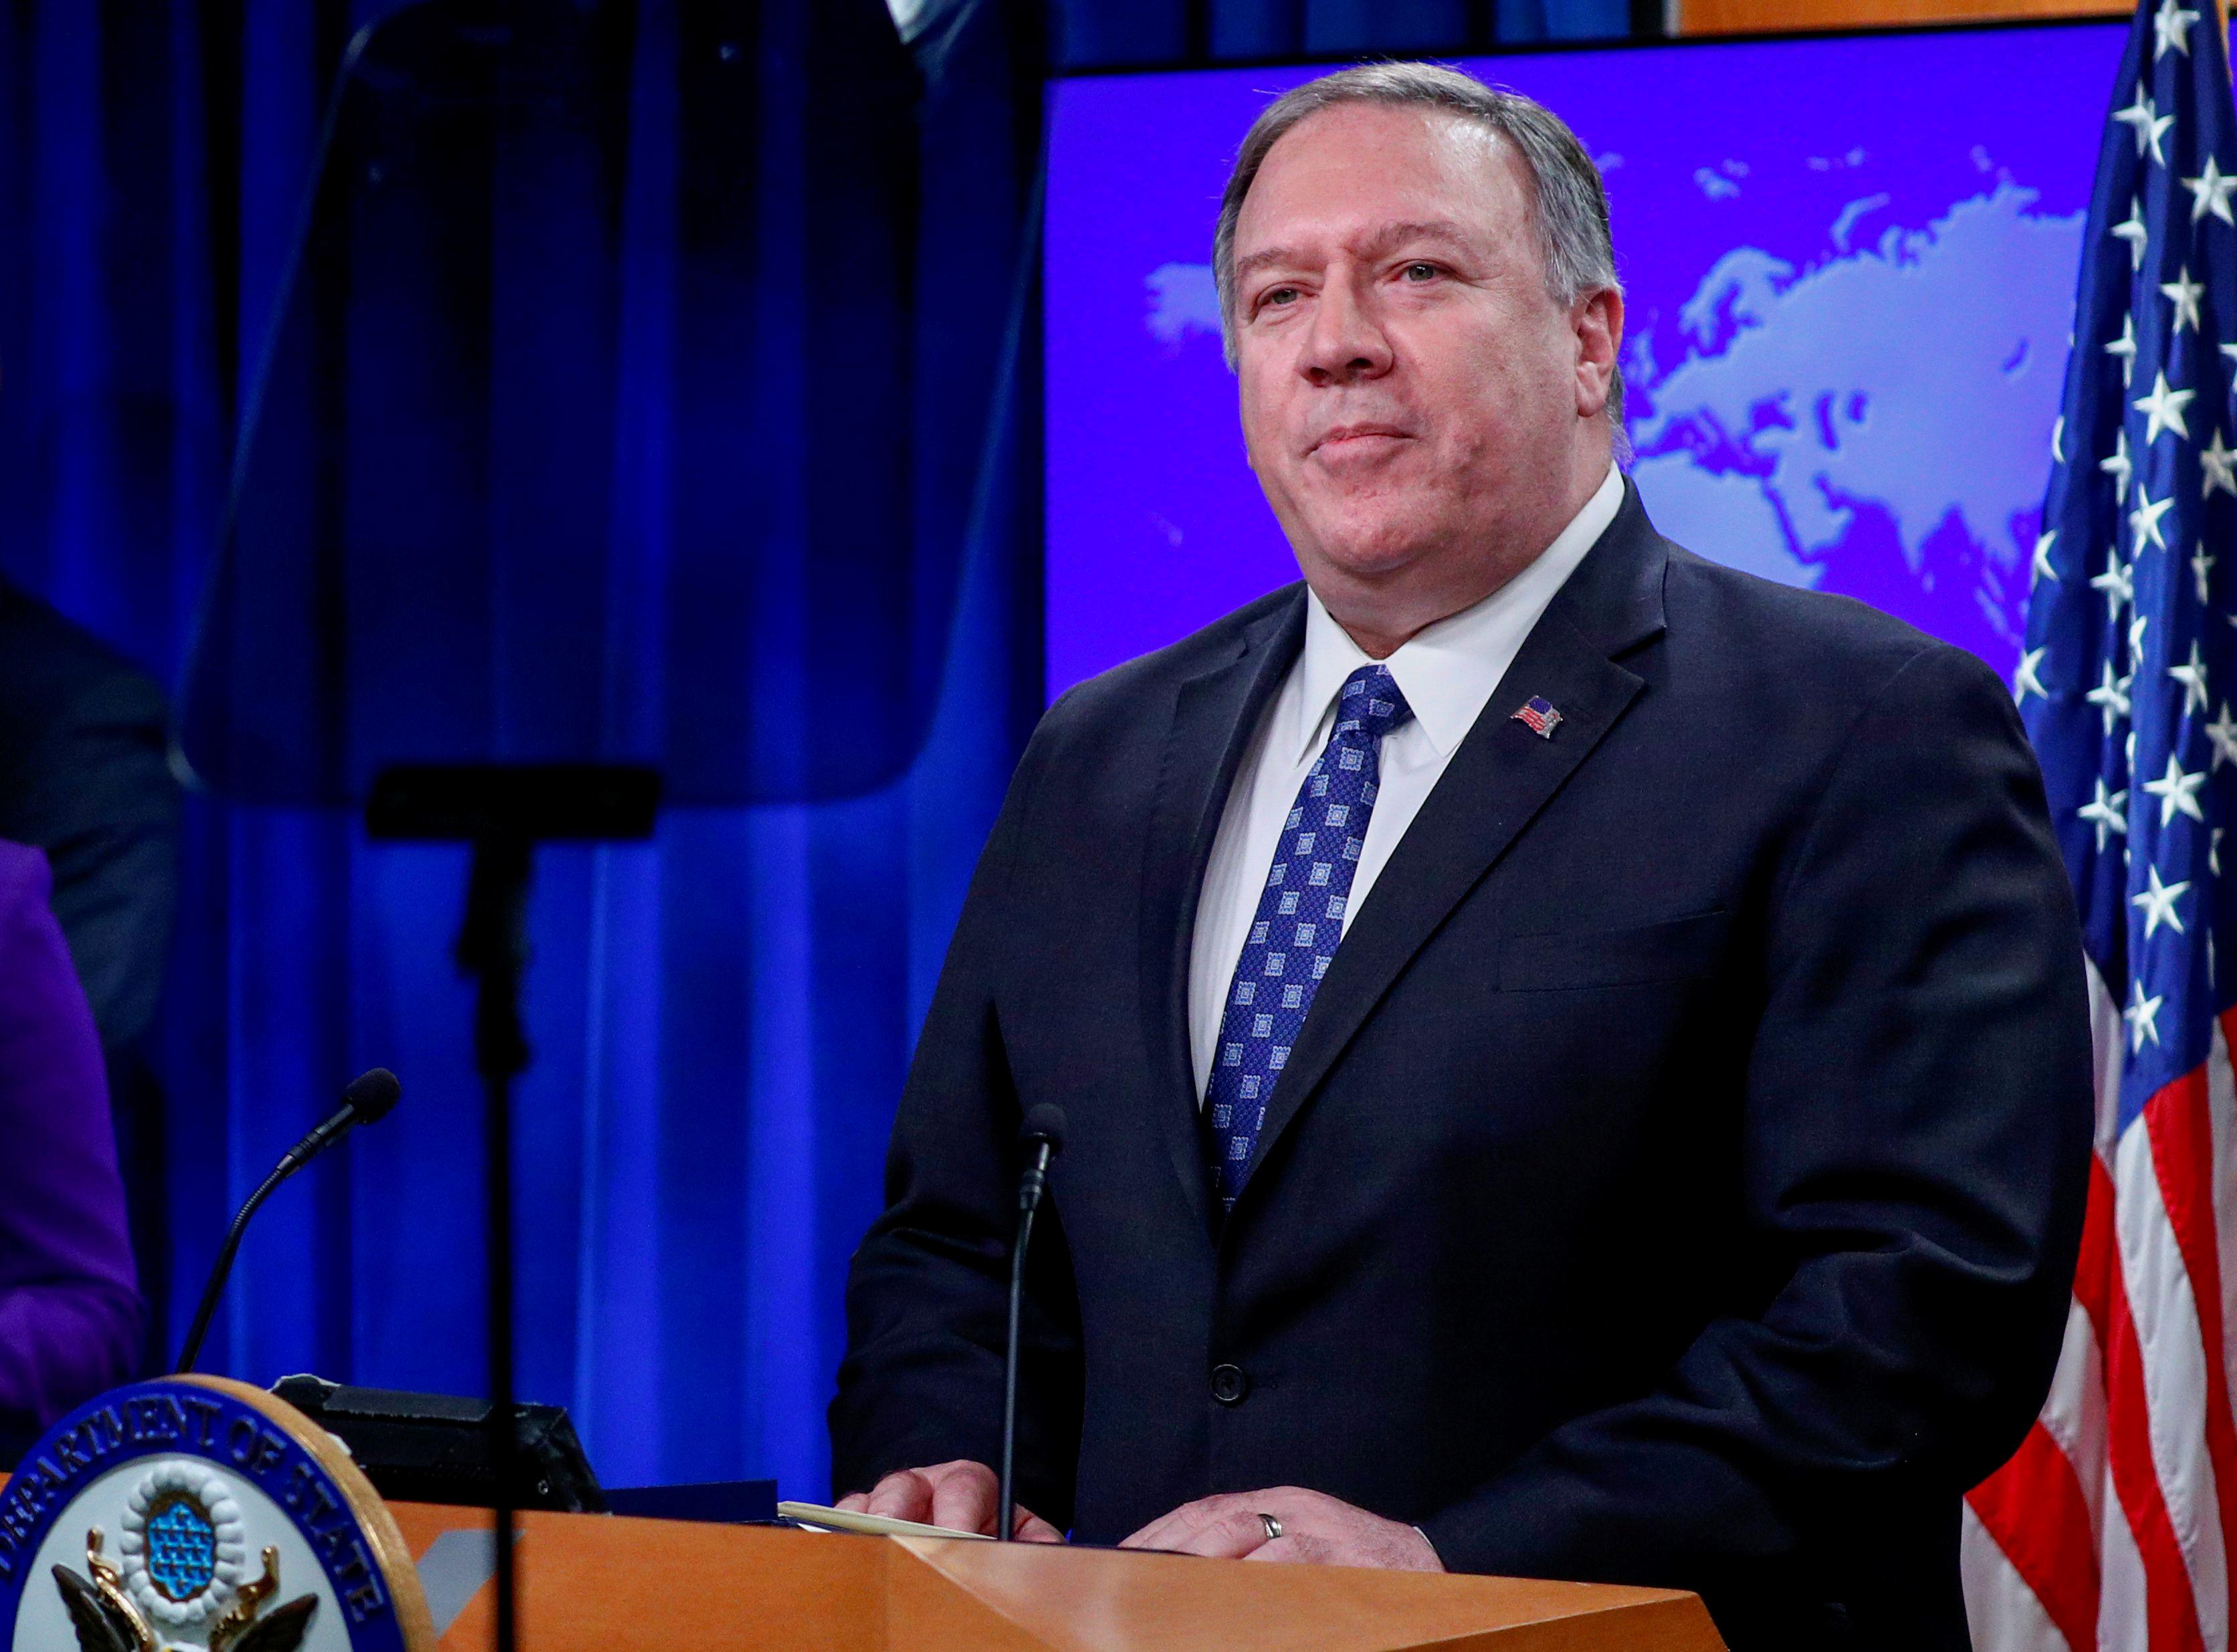 U.S. House committee sets Iran hearing, invites Pompeo